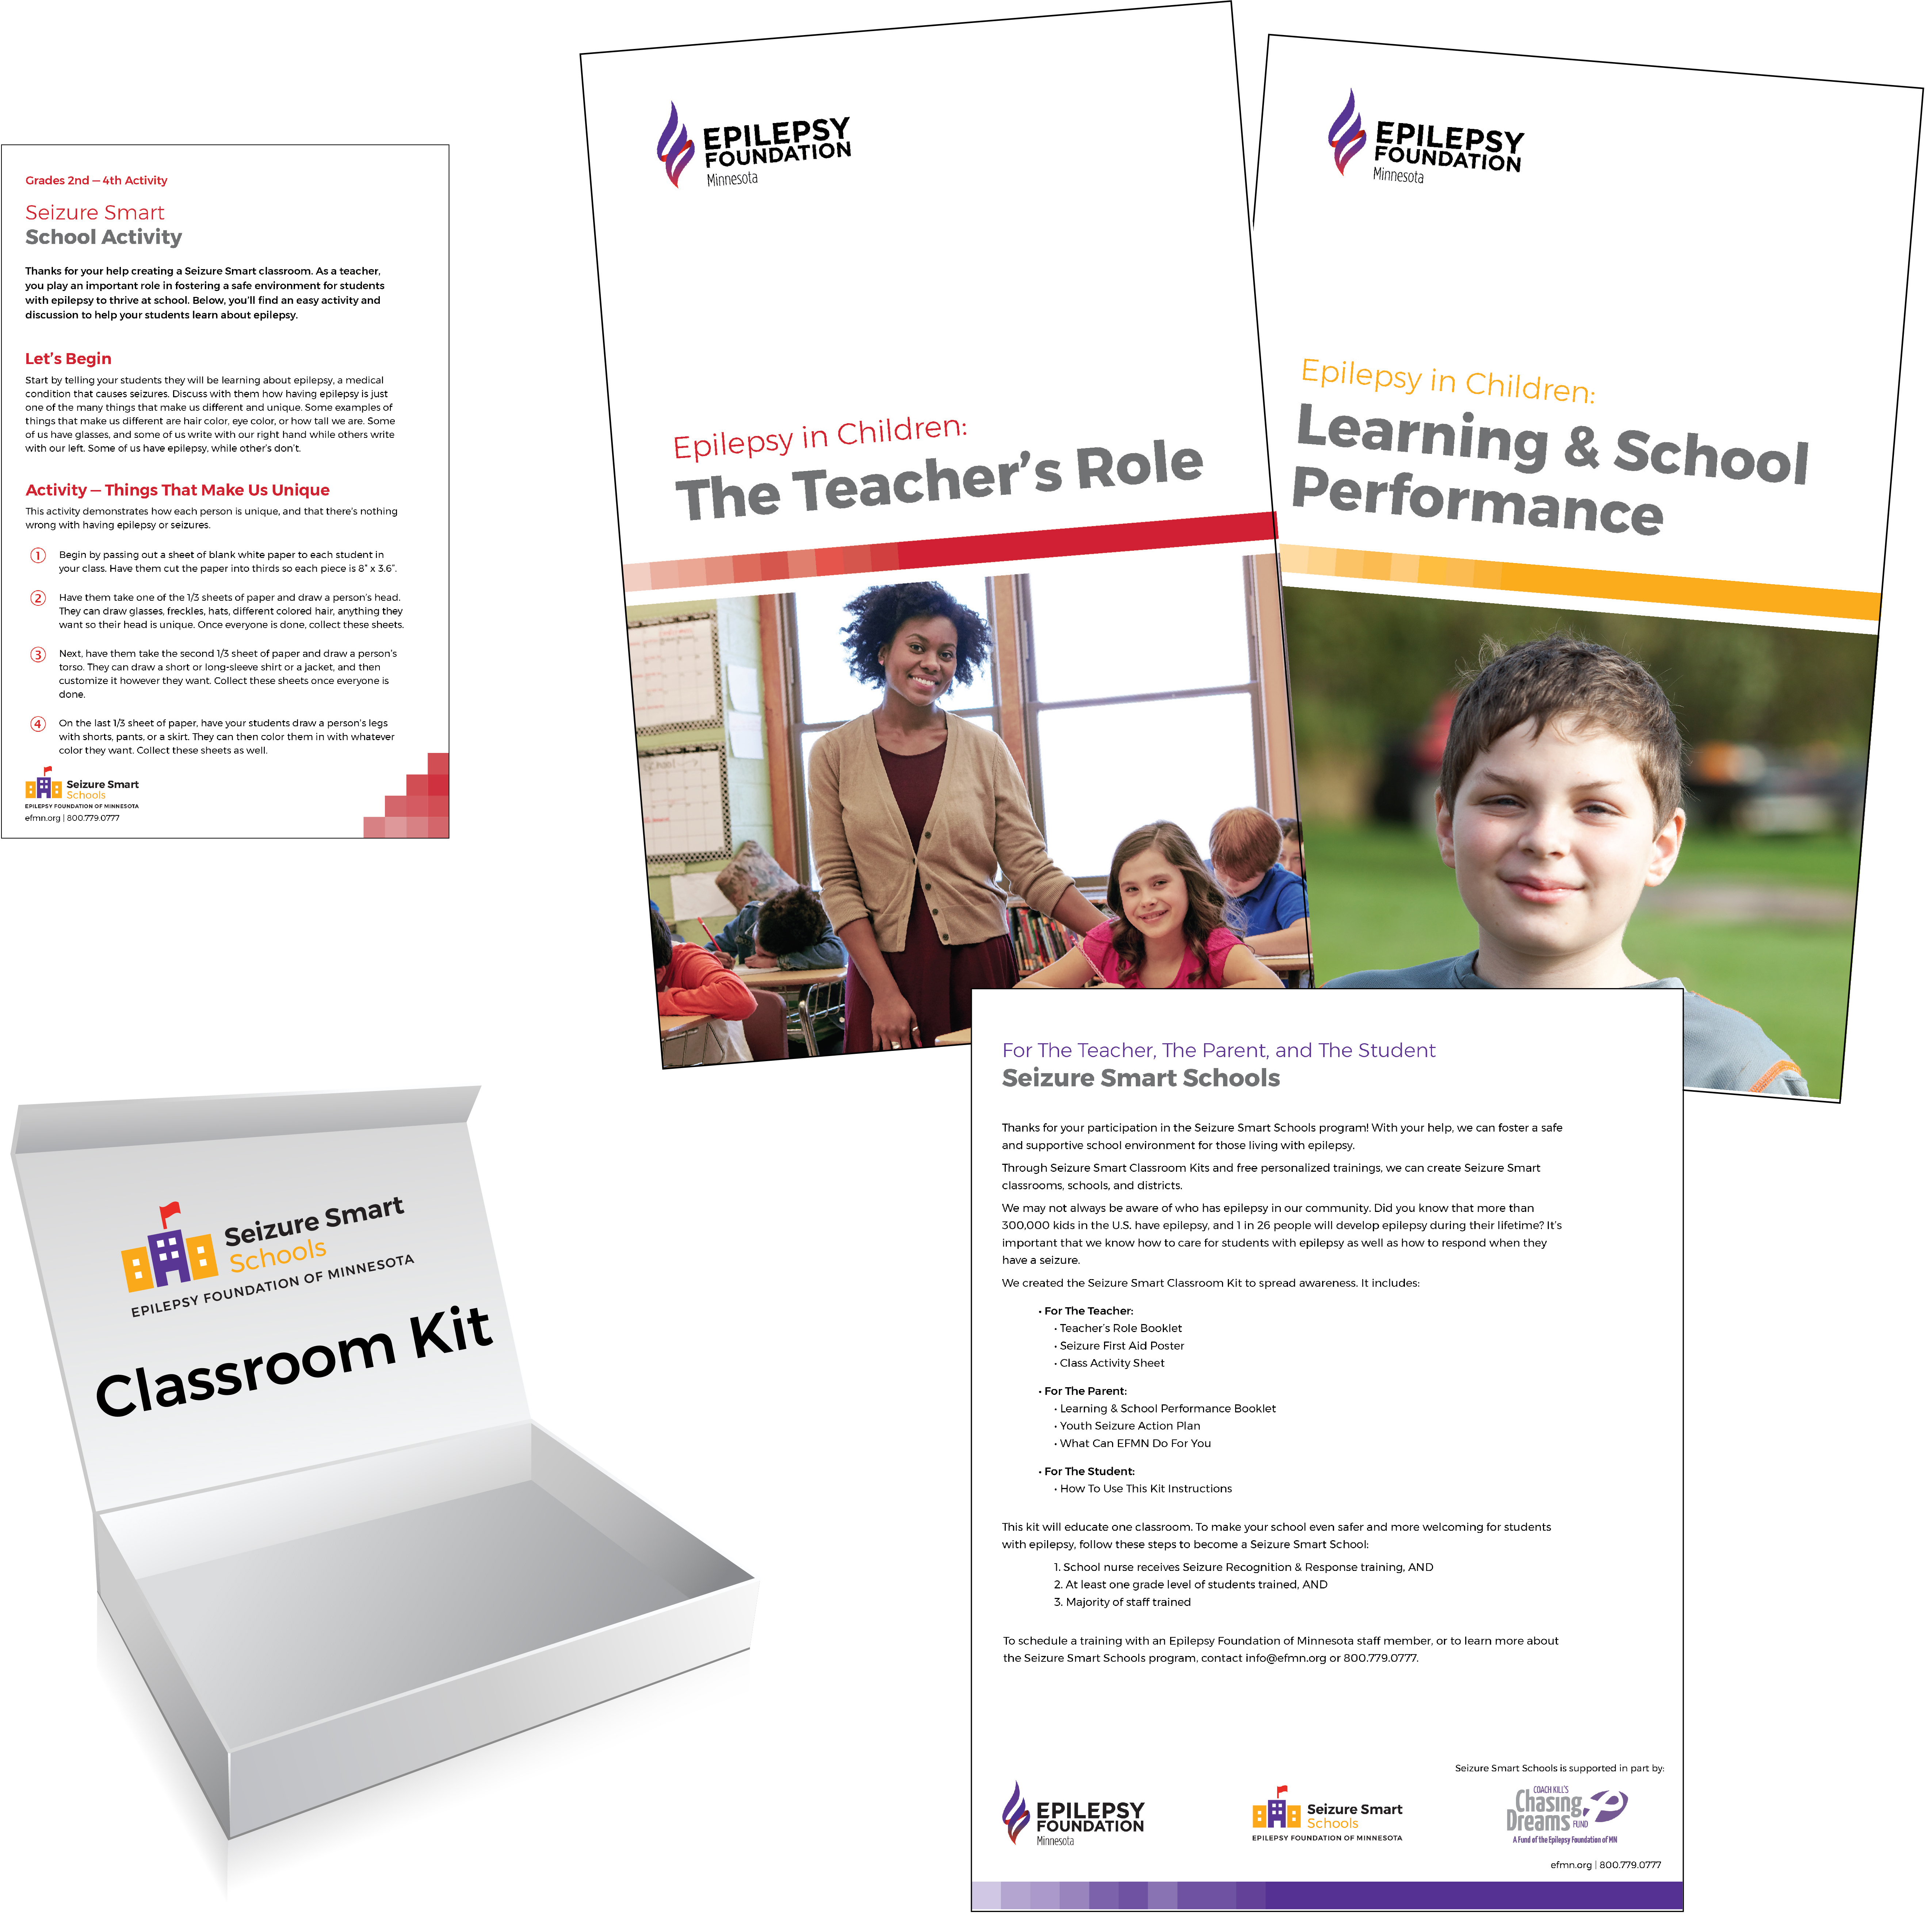 Contents of Classroom Kit with booklets for teachers and parents to understand epilepsy in the classroom.